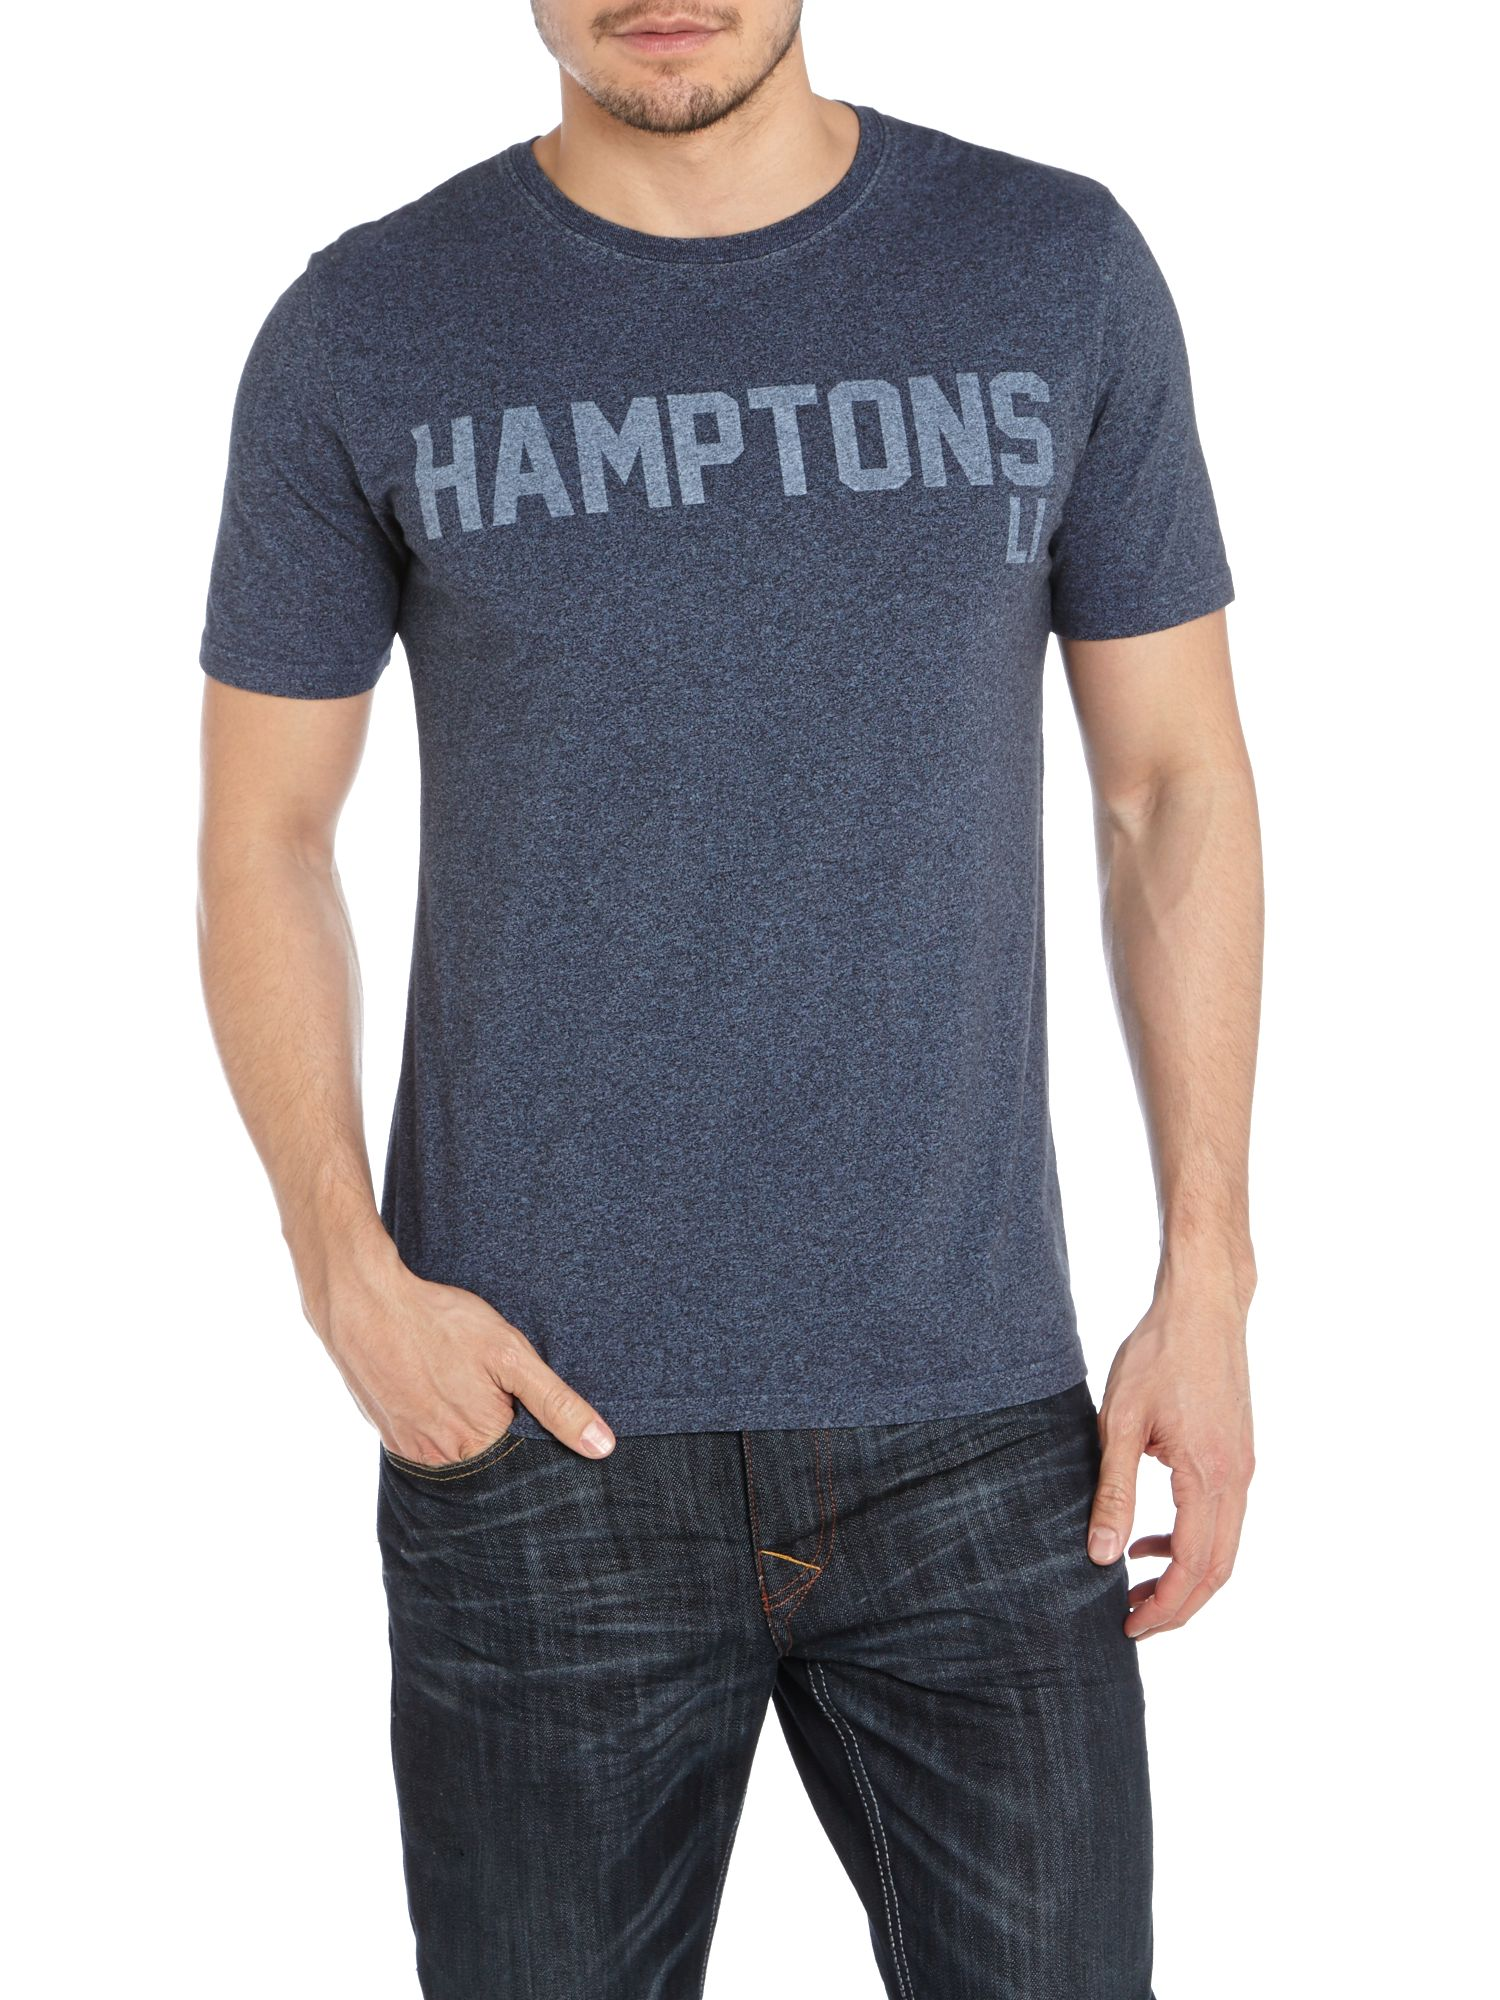 Hamptons printed t shirt